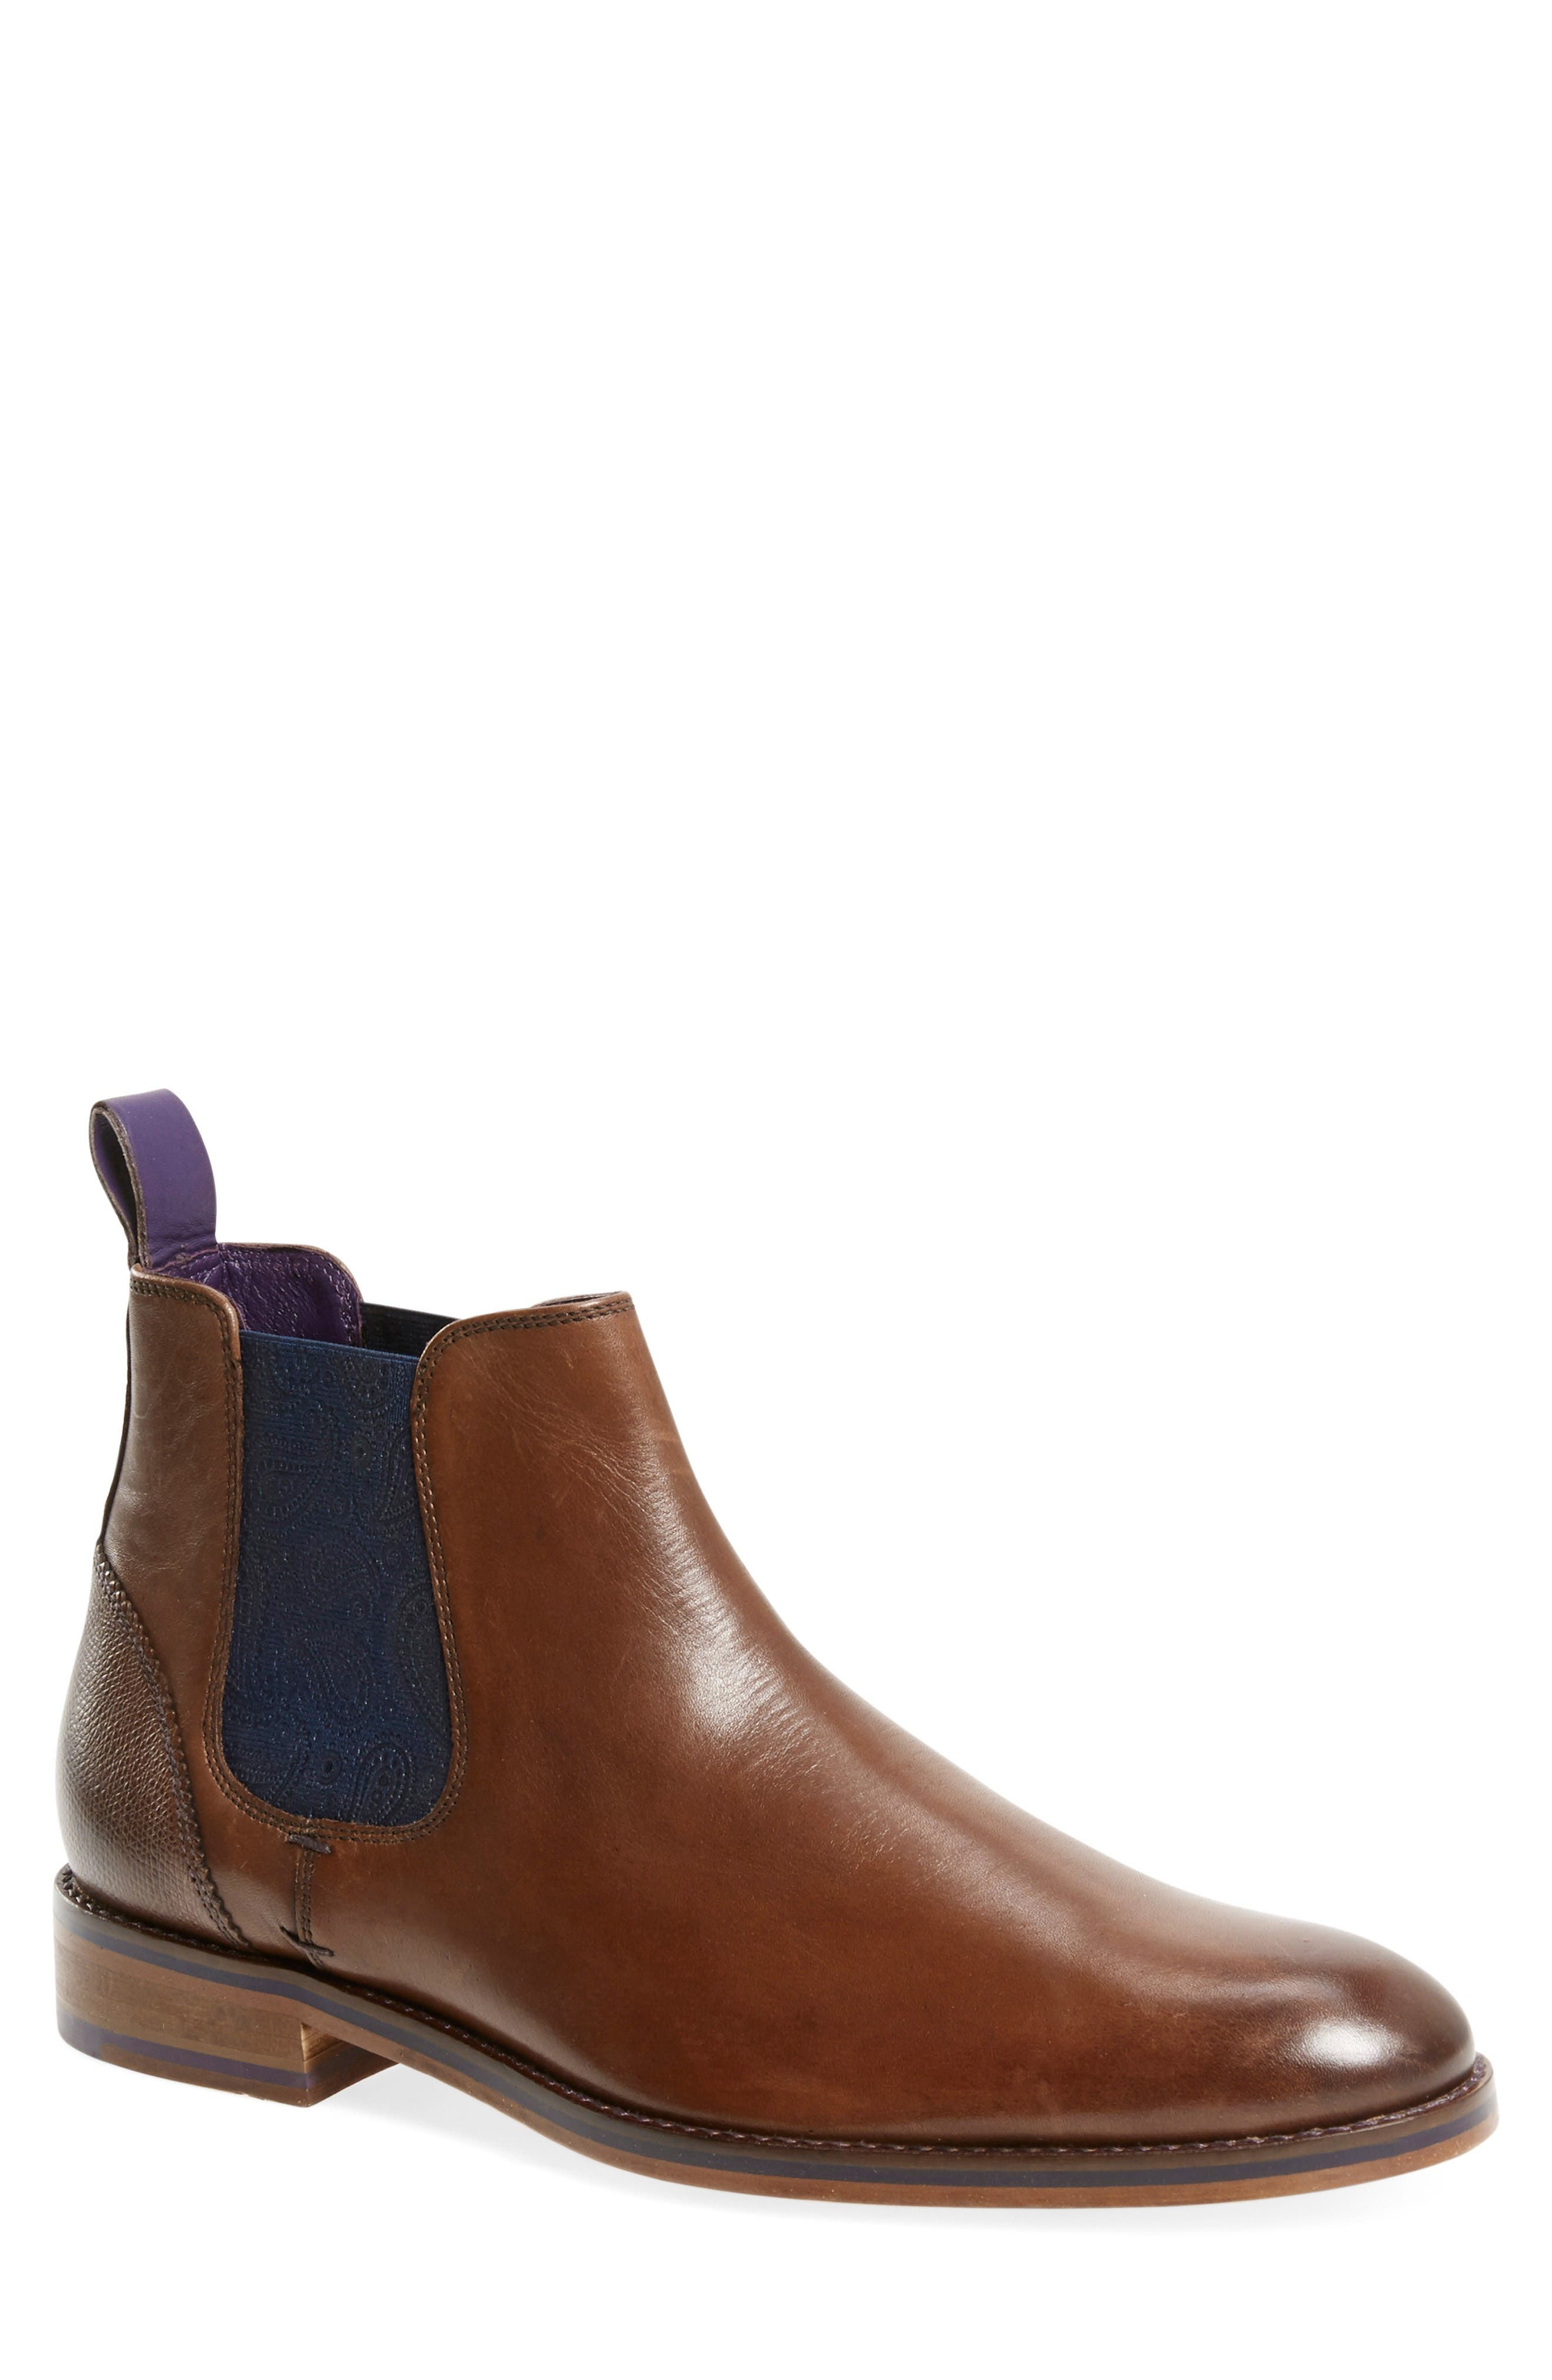 TED BAKER LONDON 'Camroon 4' Chelsea Boot, Main, color, 219